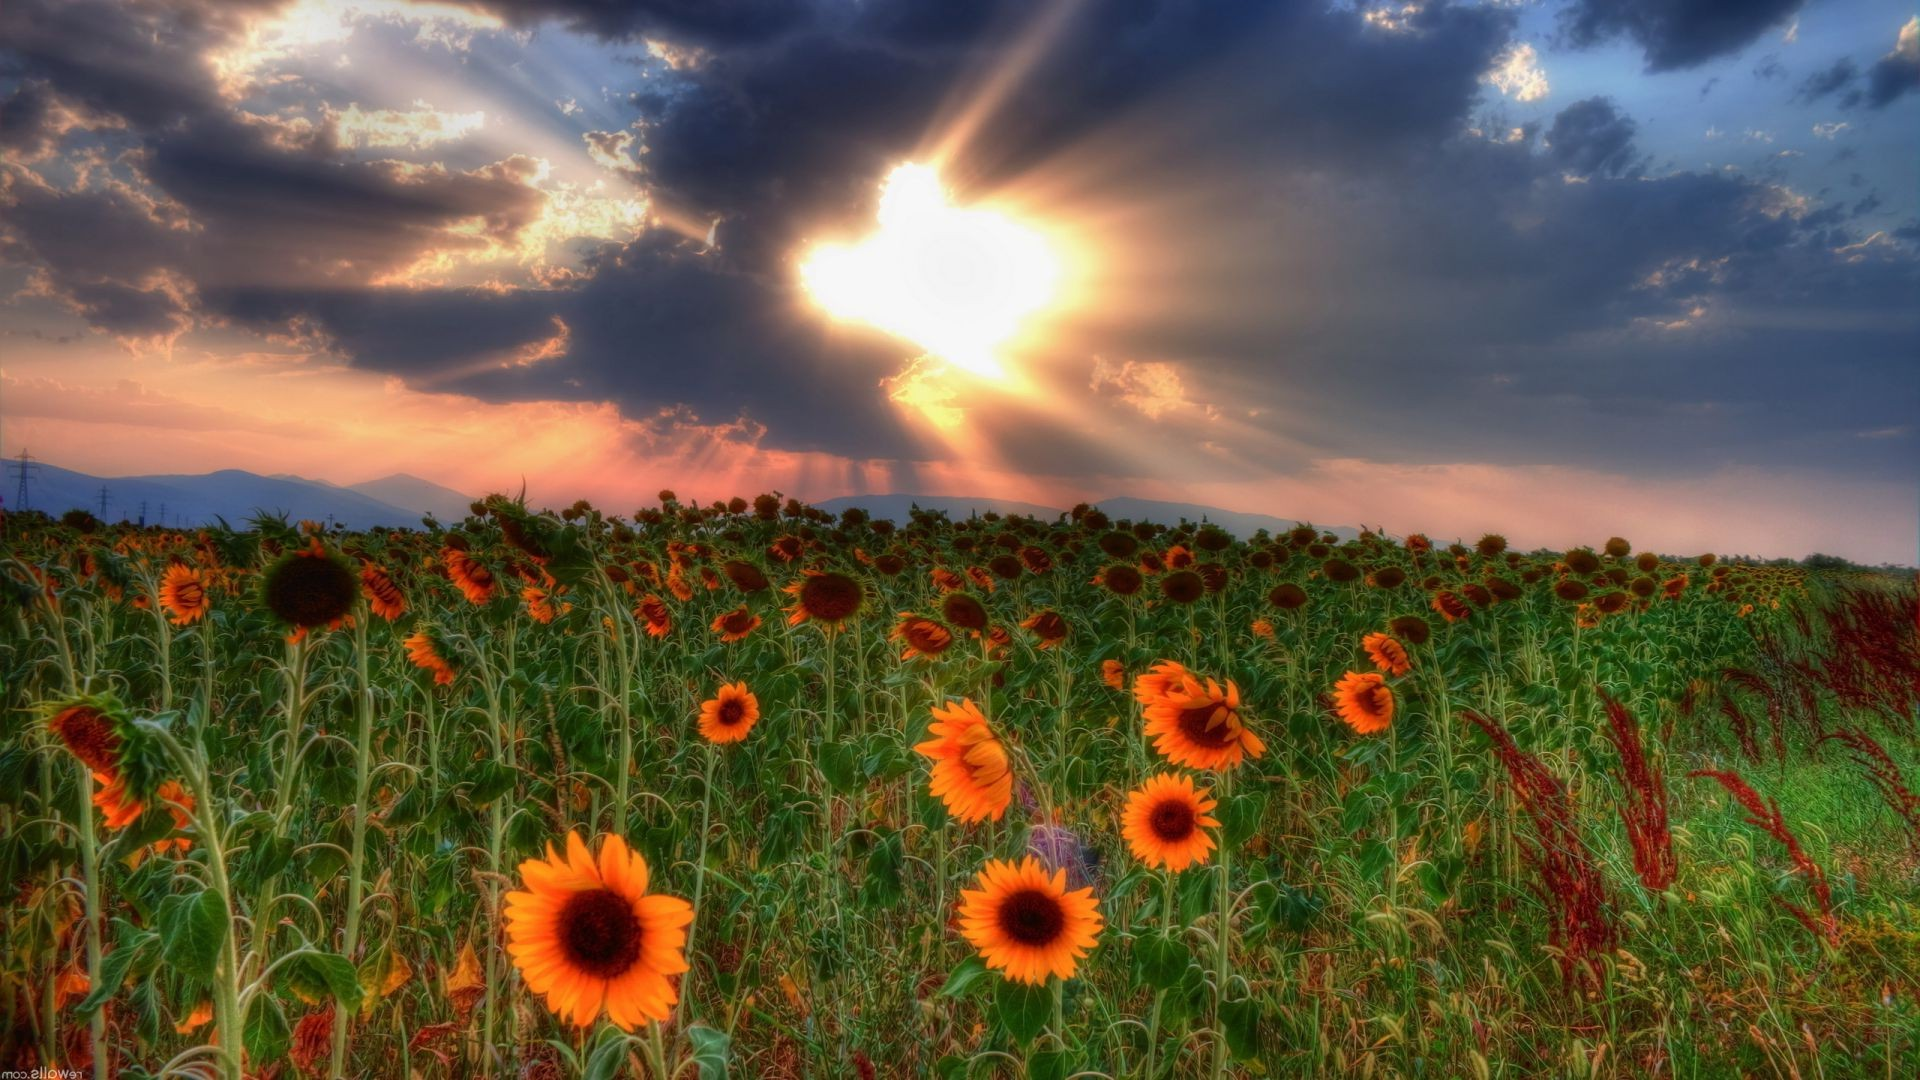 the sunset and sunrise field sun rural nature summer flower bright hayfield landscape flora agriculture country fair weather sky countryside grass outdoors color growth